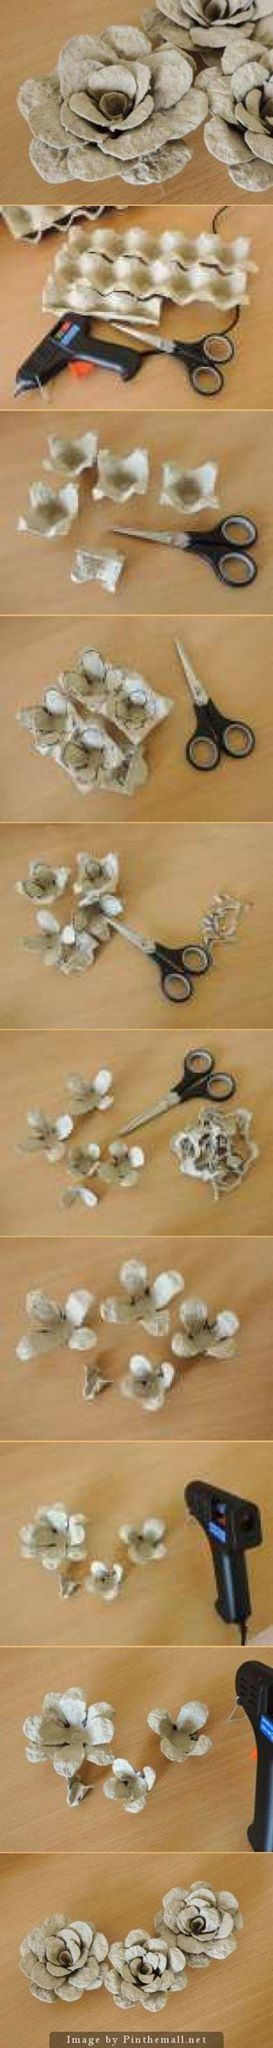 32 best plastic fork and spoon crafts images on pinterest Egg carton flowers ideas